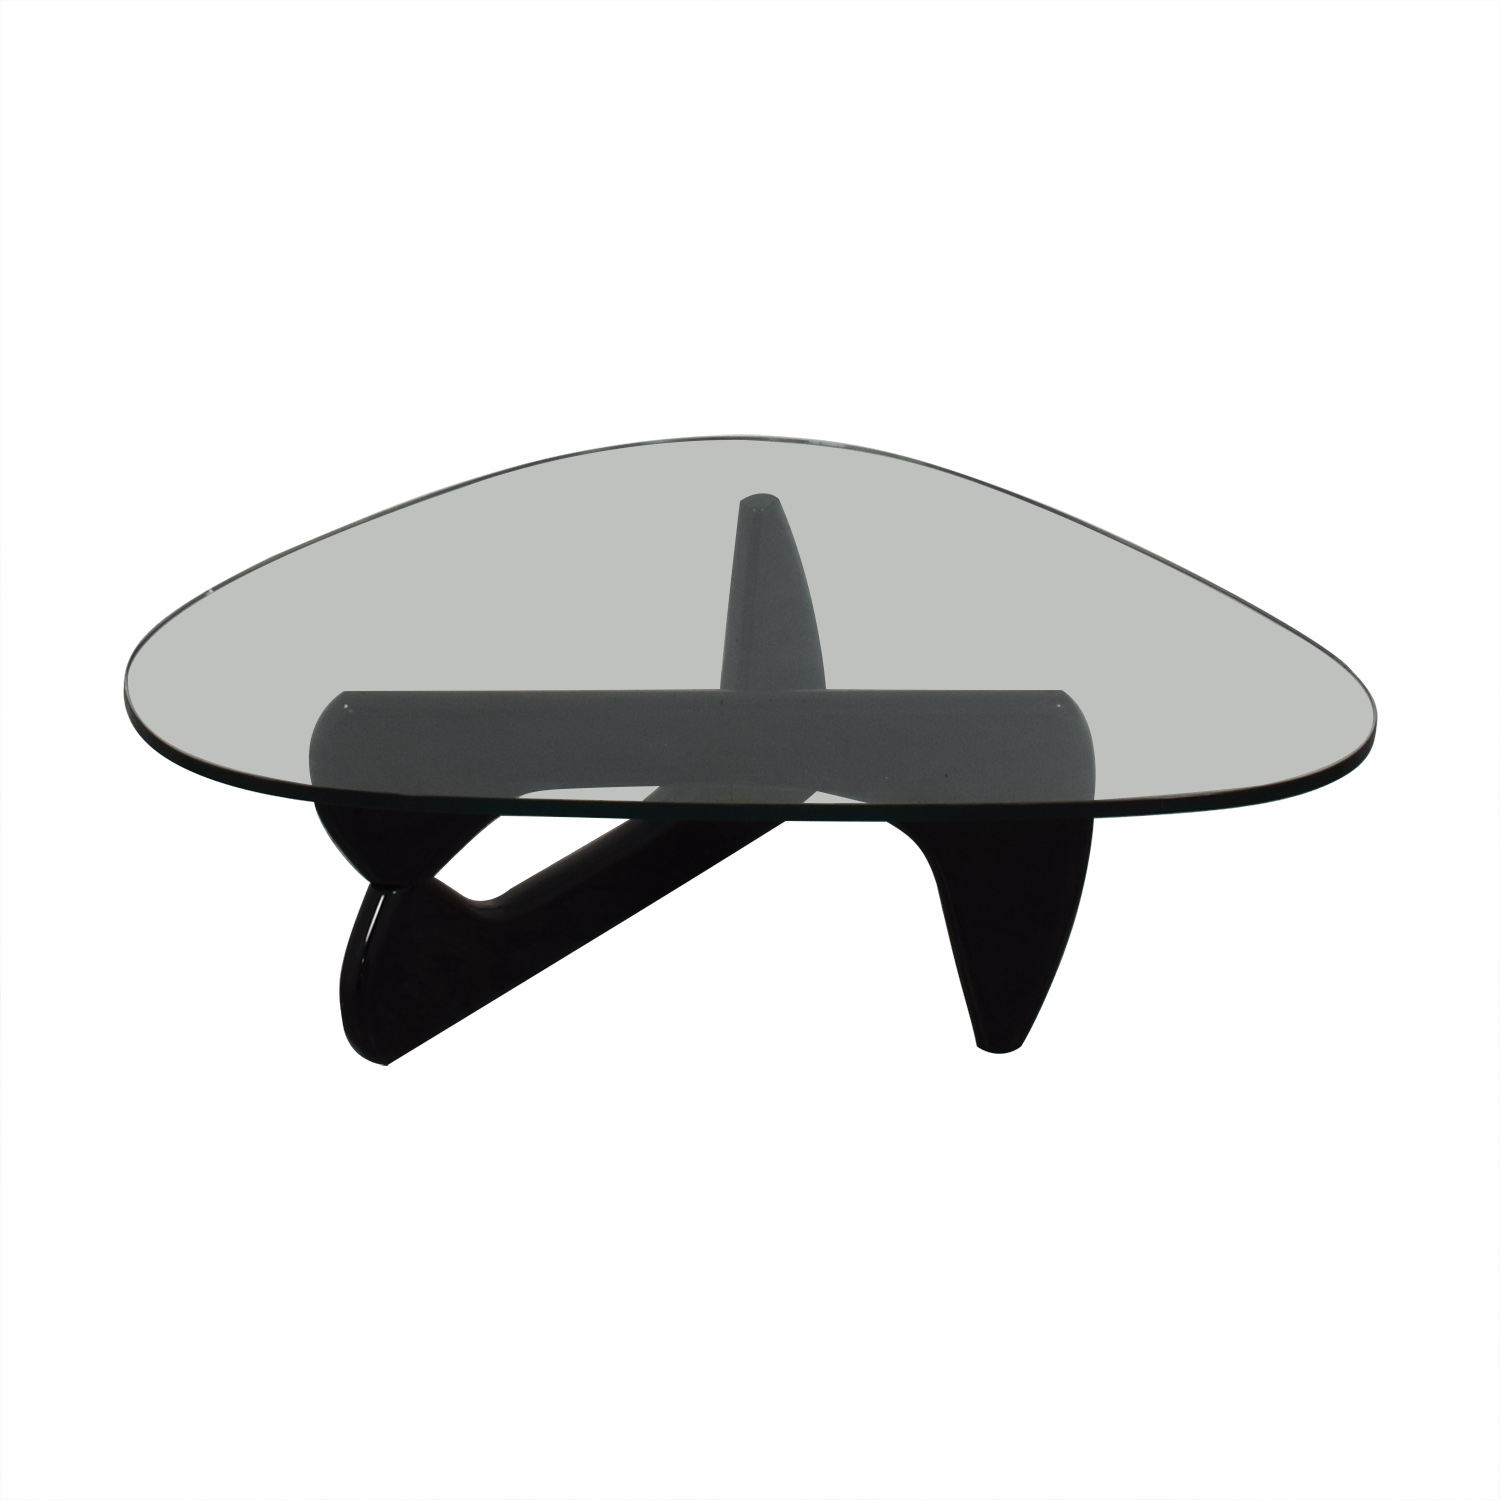 Maurice Villency Maurice Villency Noguchi Style Glass with Black Lacquer Coffee Table dimensions